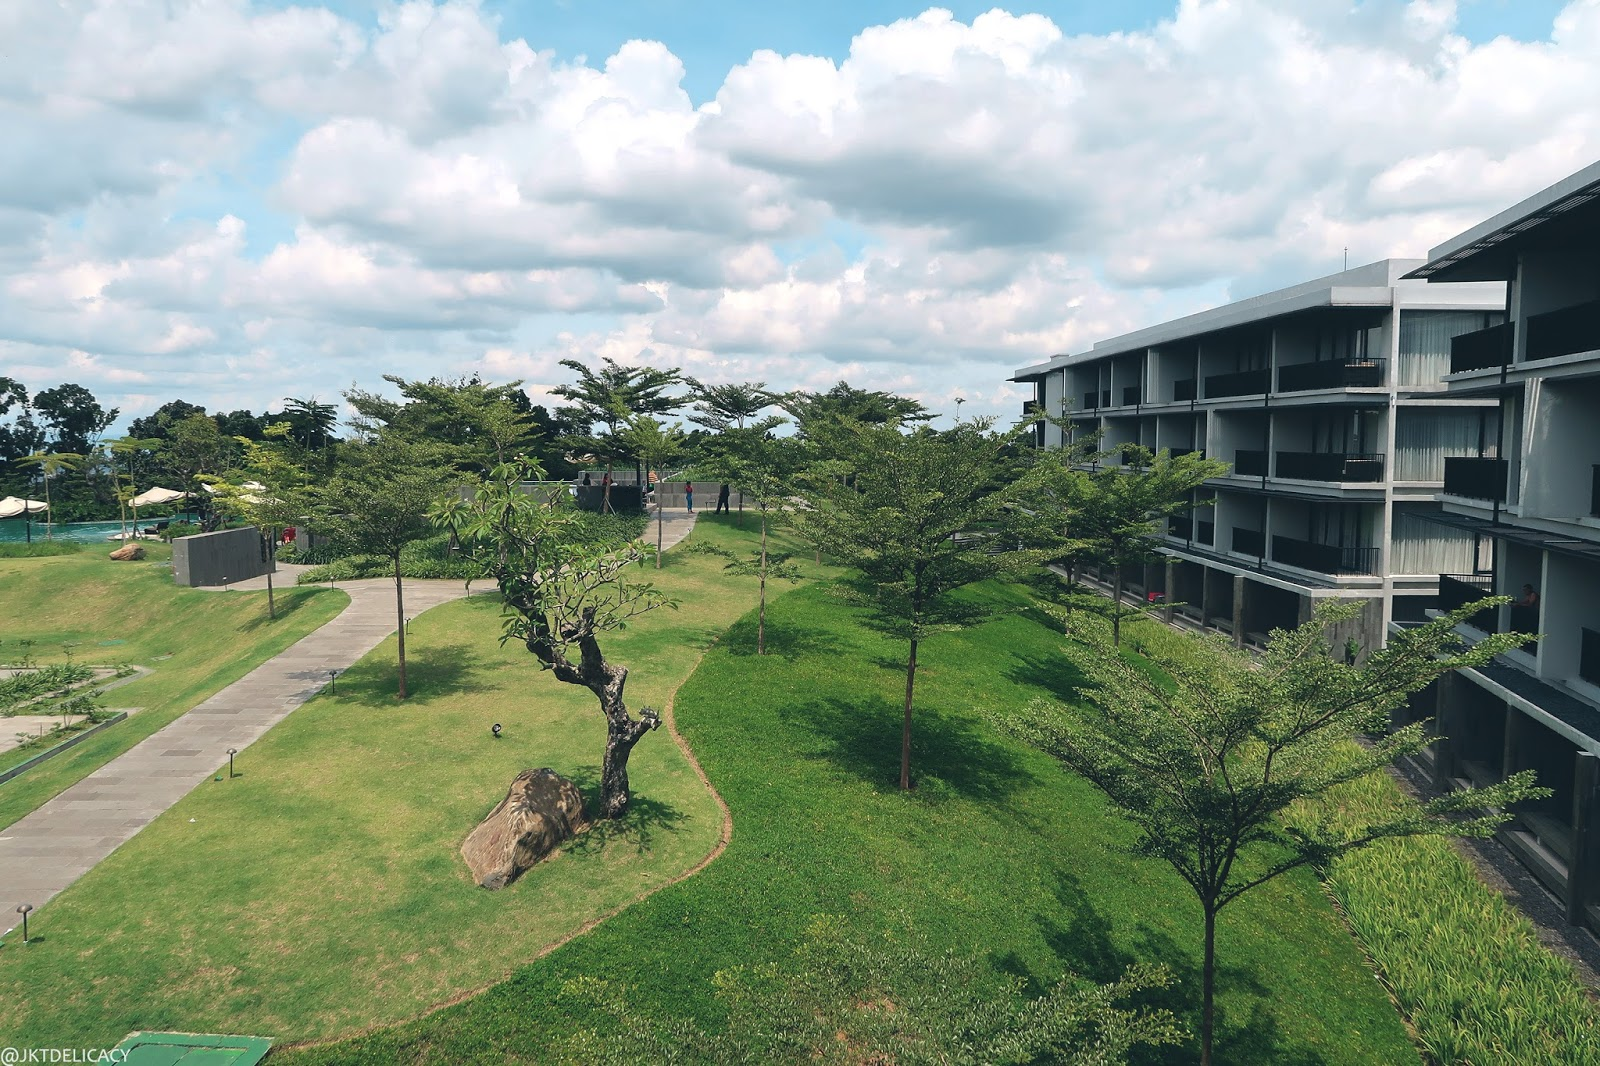 Royal Tulip Gunung Geulis Secret 5 Star Resort In Voucher Hotel We Finally Arrived Youll Never Know A Hidden Place Like This Has Beautiful Semi Luxurious Resorts It Was Very Green Because Theres Nothing But